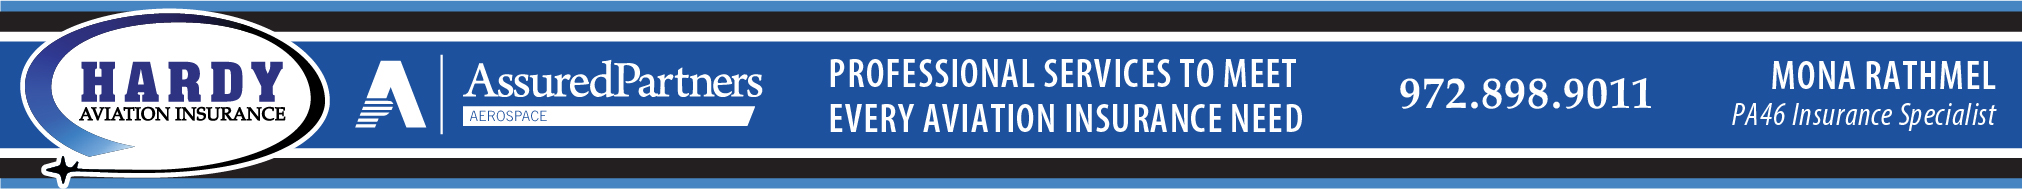 Hardy Aviation banner ad